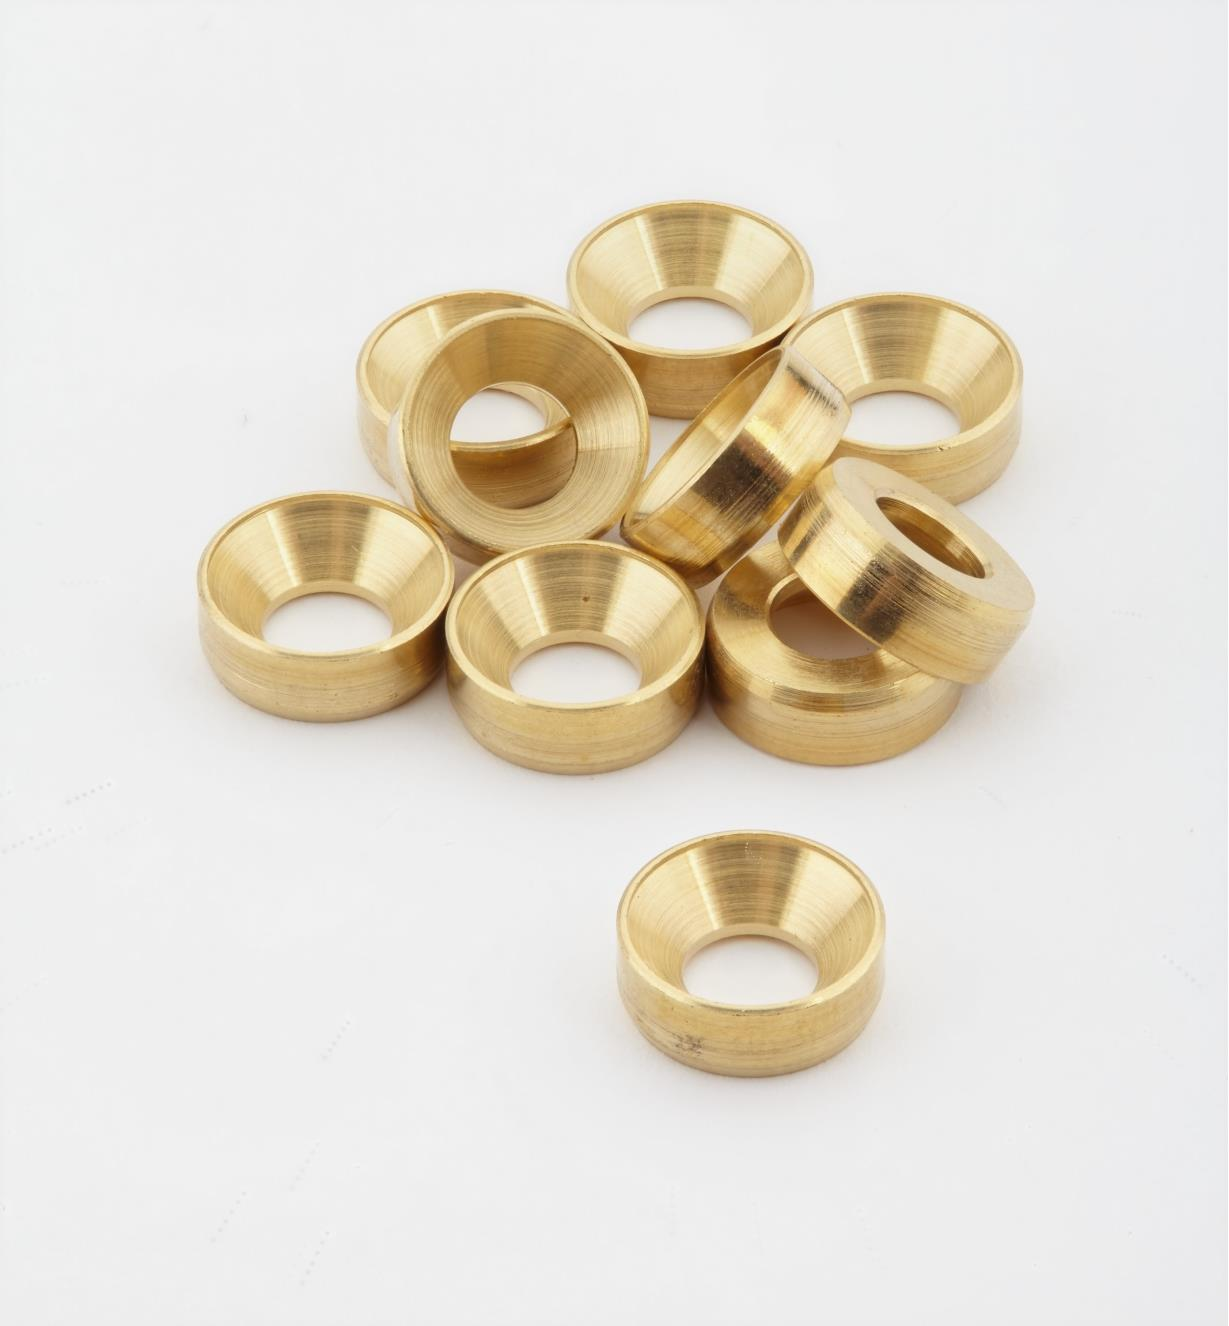 01K7003 - #10 Brass Washers, pkg. of 10